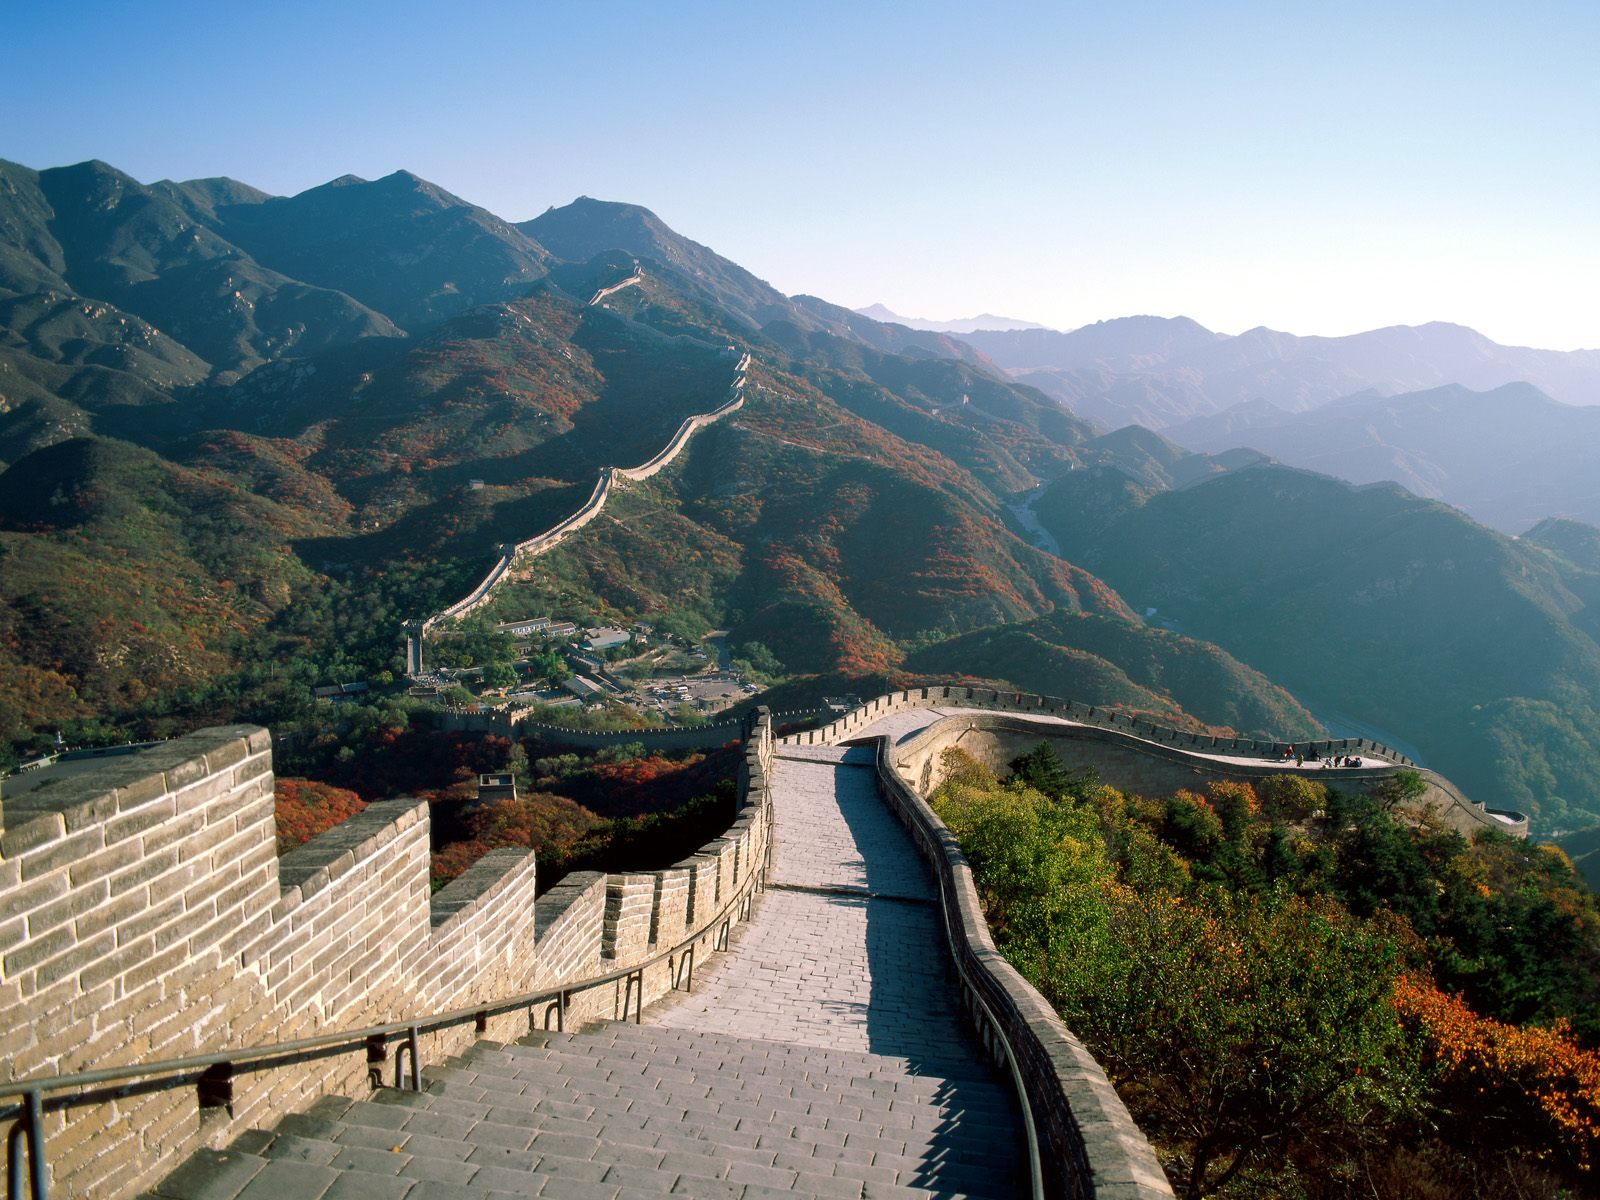 http://4.bp.blogspot.com/_2UbsSBz9ckE/Svnk-OaYkUI/AAAAAAAAAaY/5ifsK-qZdys/s1600/The+Great+Wall+of+China.jpg